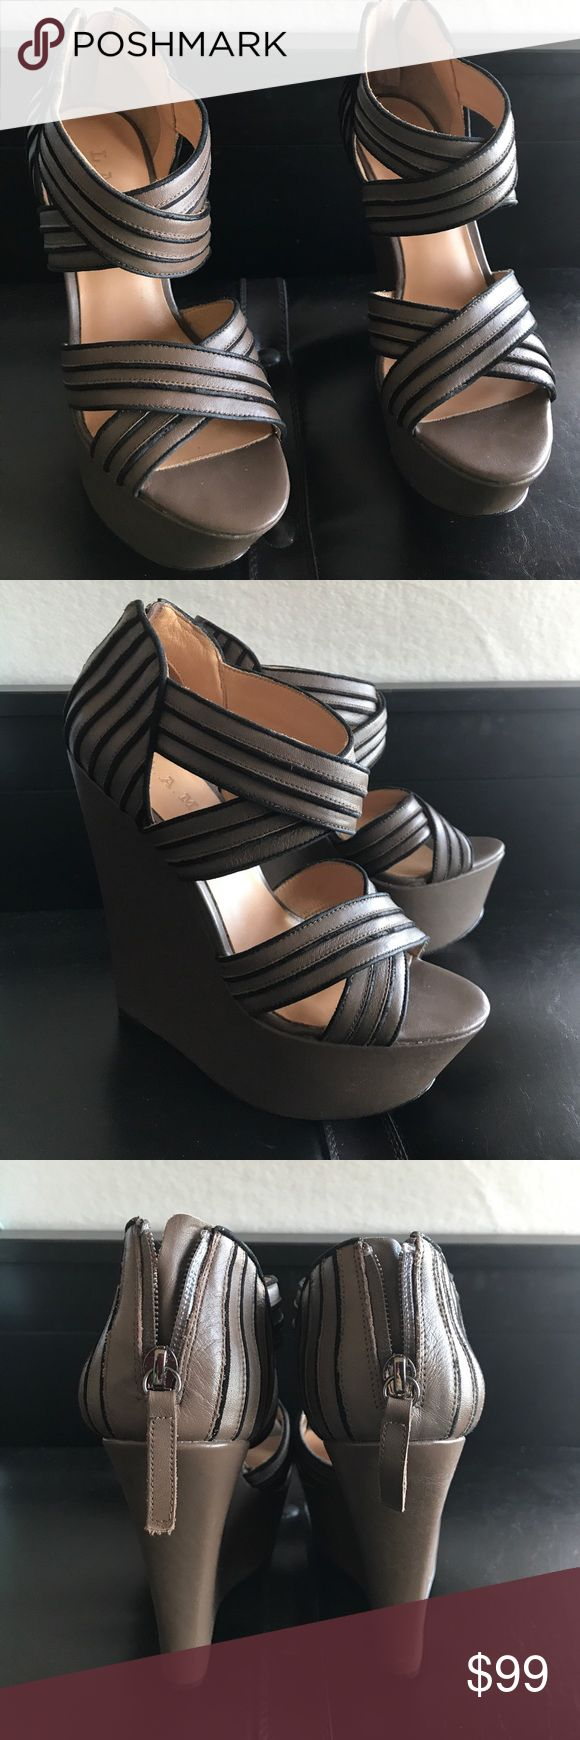 LAMB Bernadette wedge sandals sz 7.5 Leather wedge  sandals. Slightly used. Very good conditions. LAMB Shoes Platforms